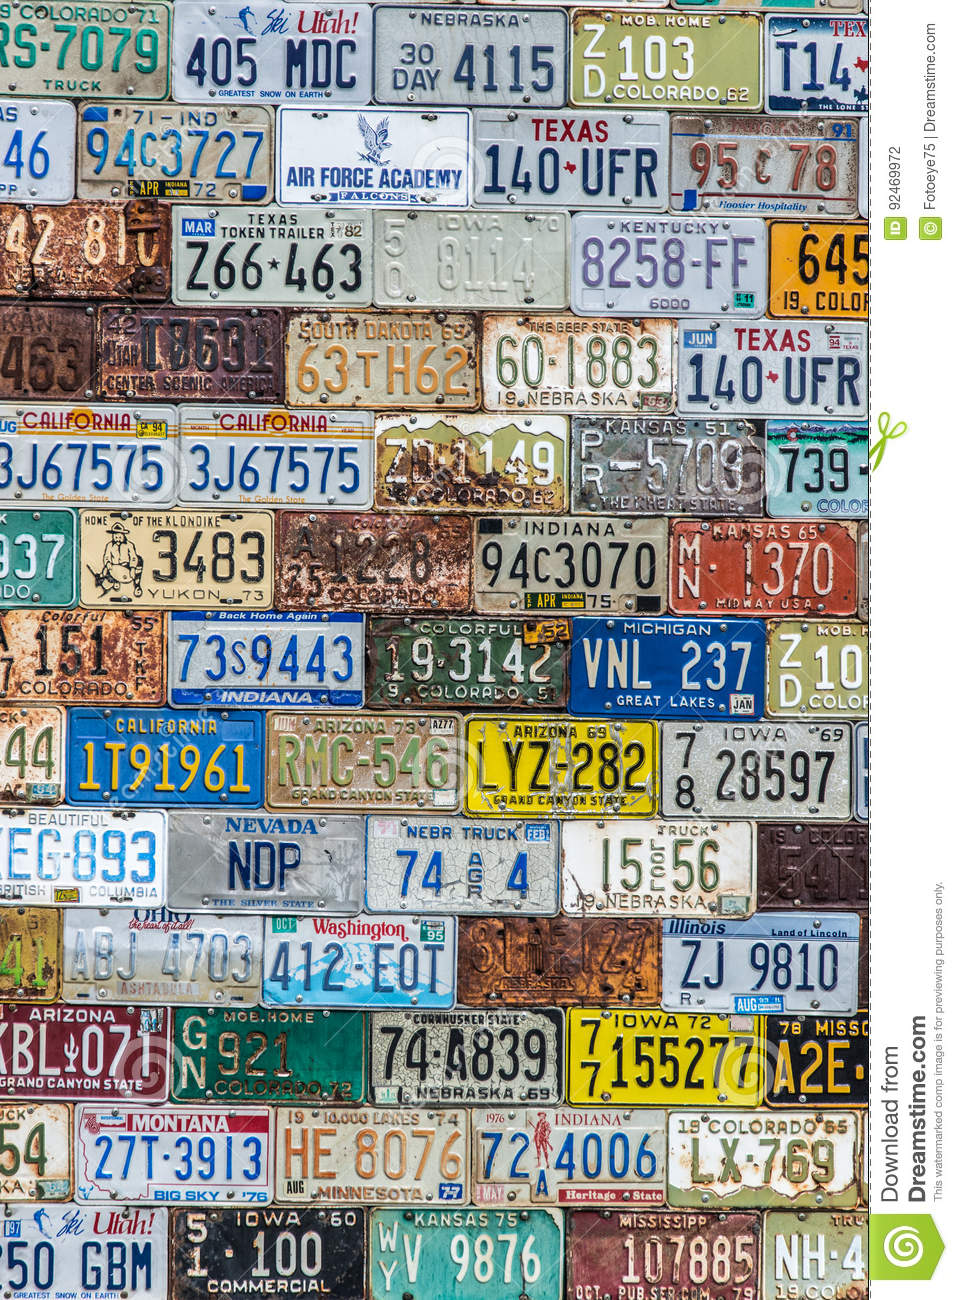 https://thumbs.dreamstime.com/z/license-plate-background-texture-pattern-wall-old-vintage-made-discarded-plates-multiple-states-united-92469972.jpg